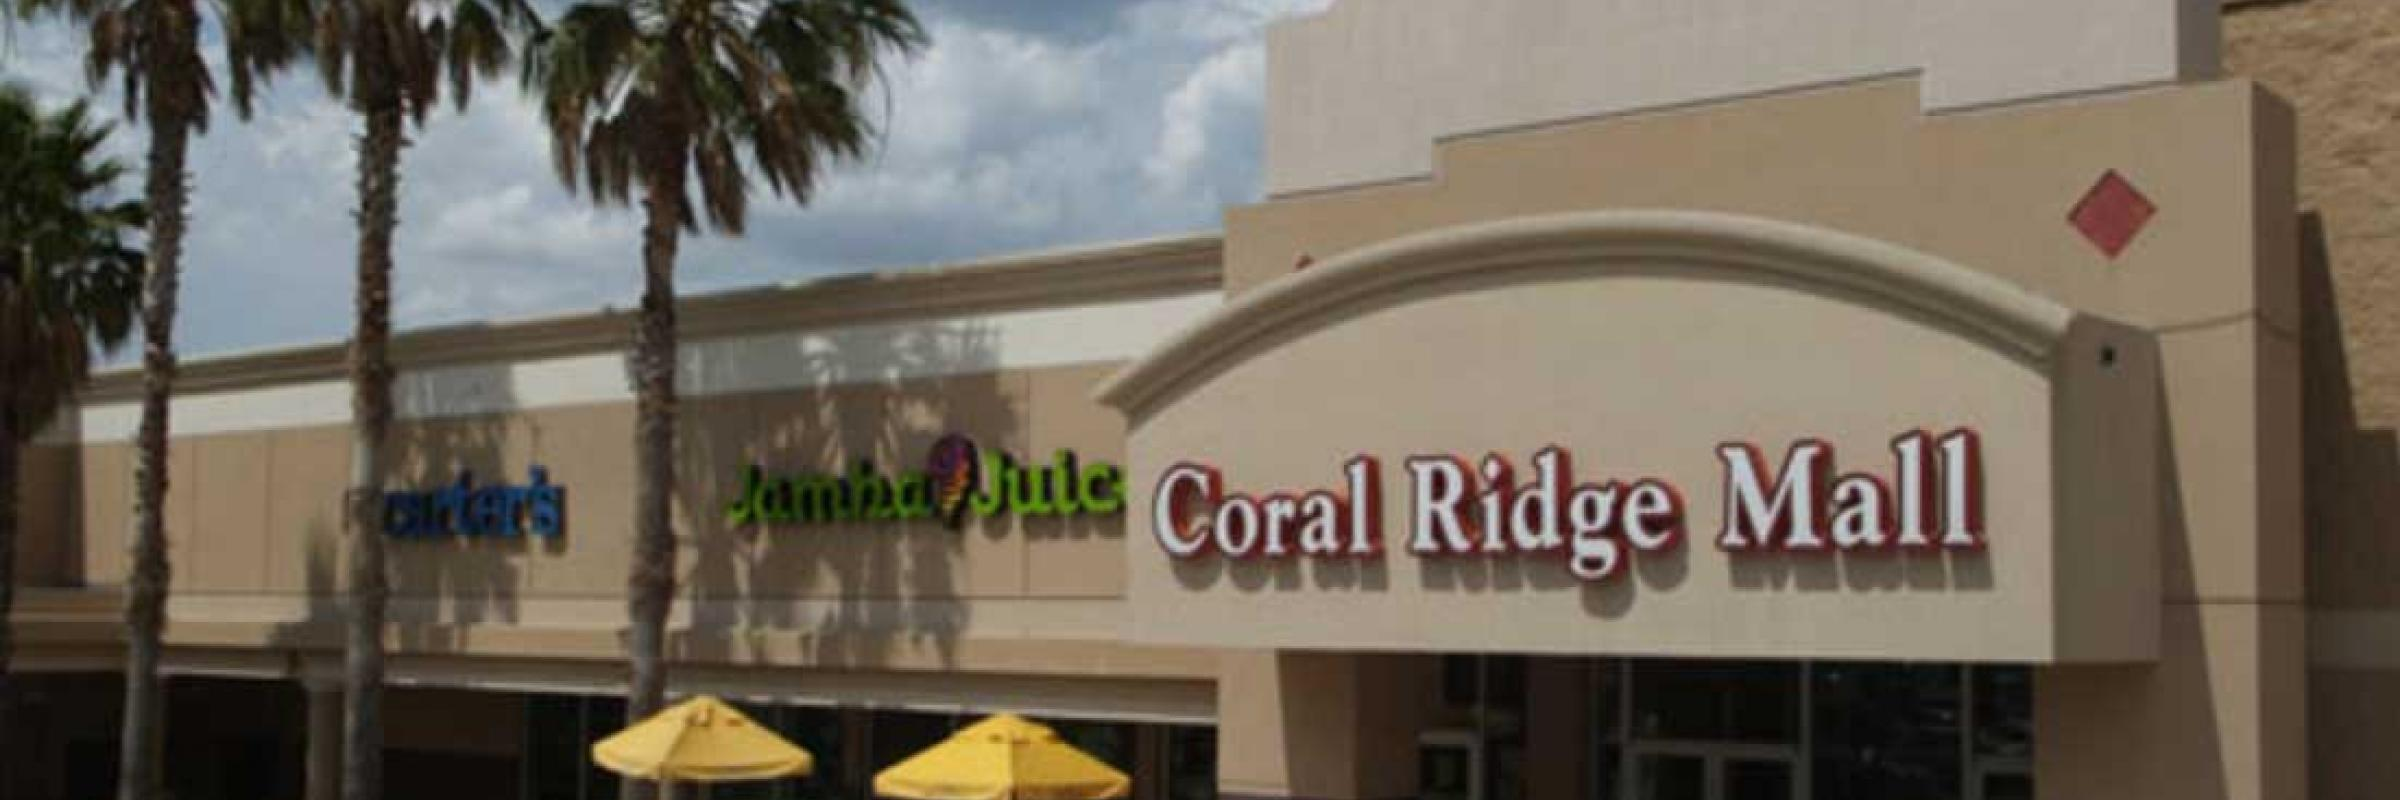 Coral Ridge Mall at Ft. Lauderdale